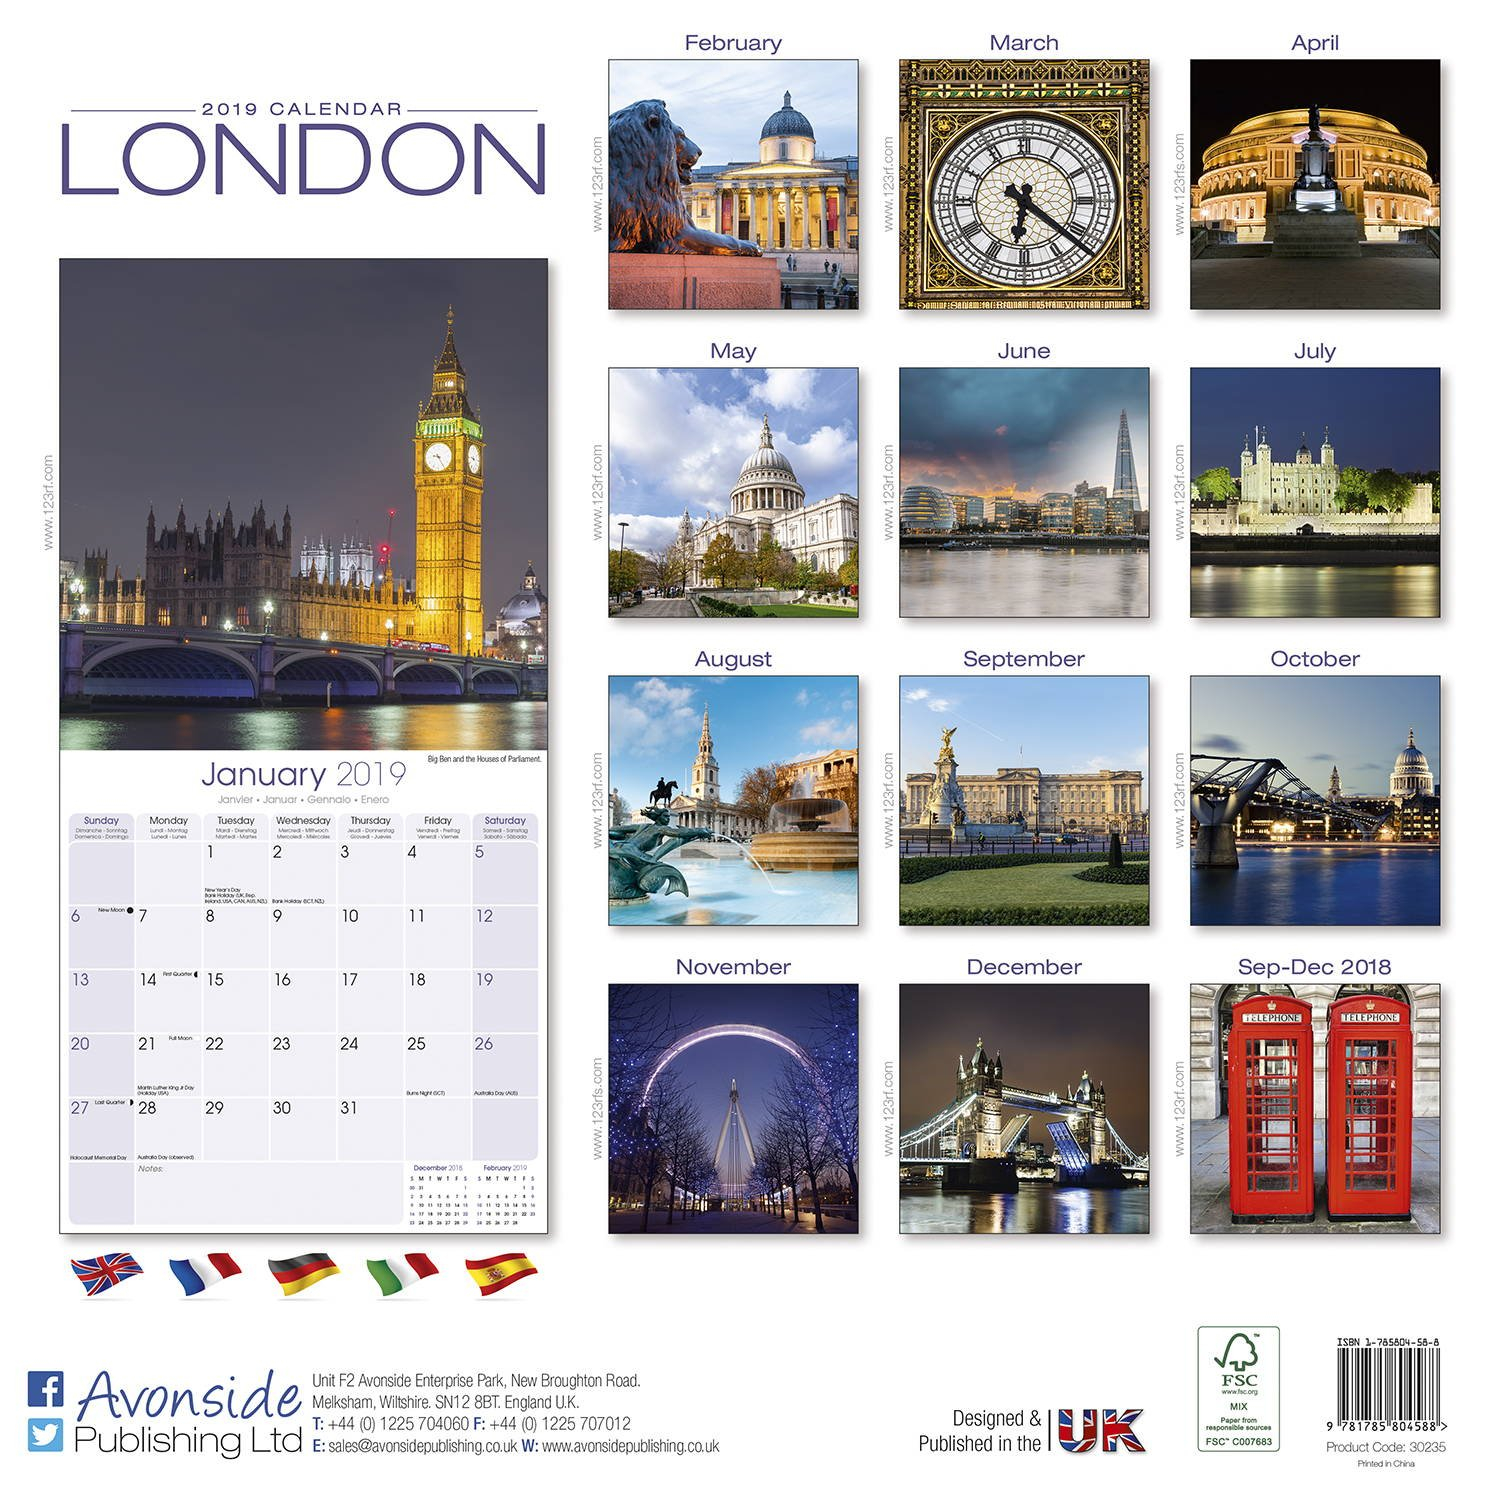 London Calendar 2019 | Pet Prints Inc. Calendar 2019 London